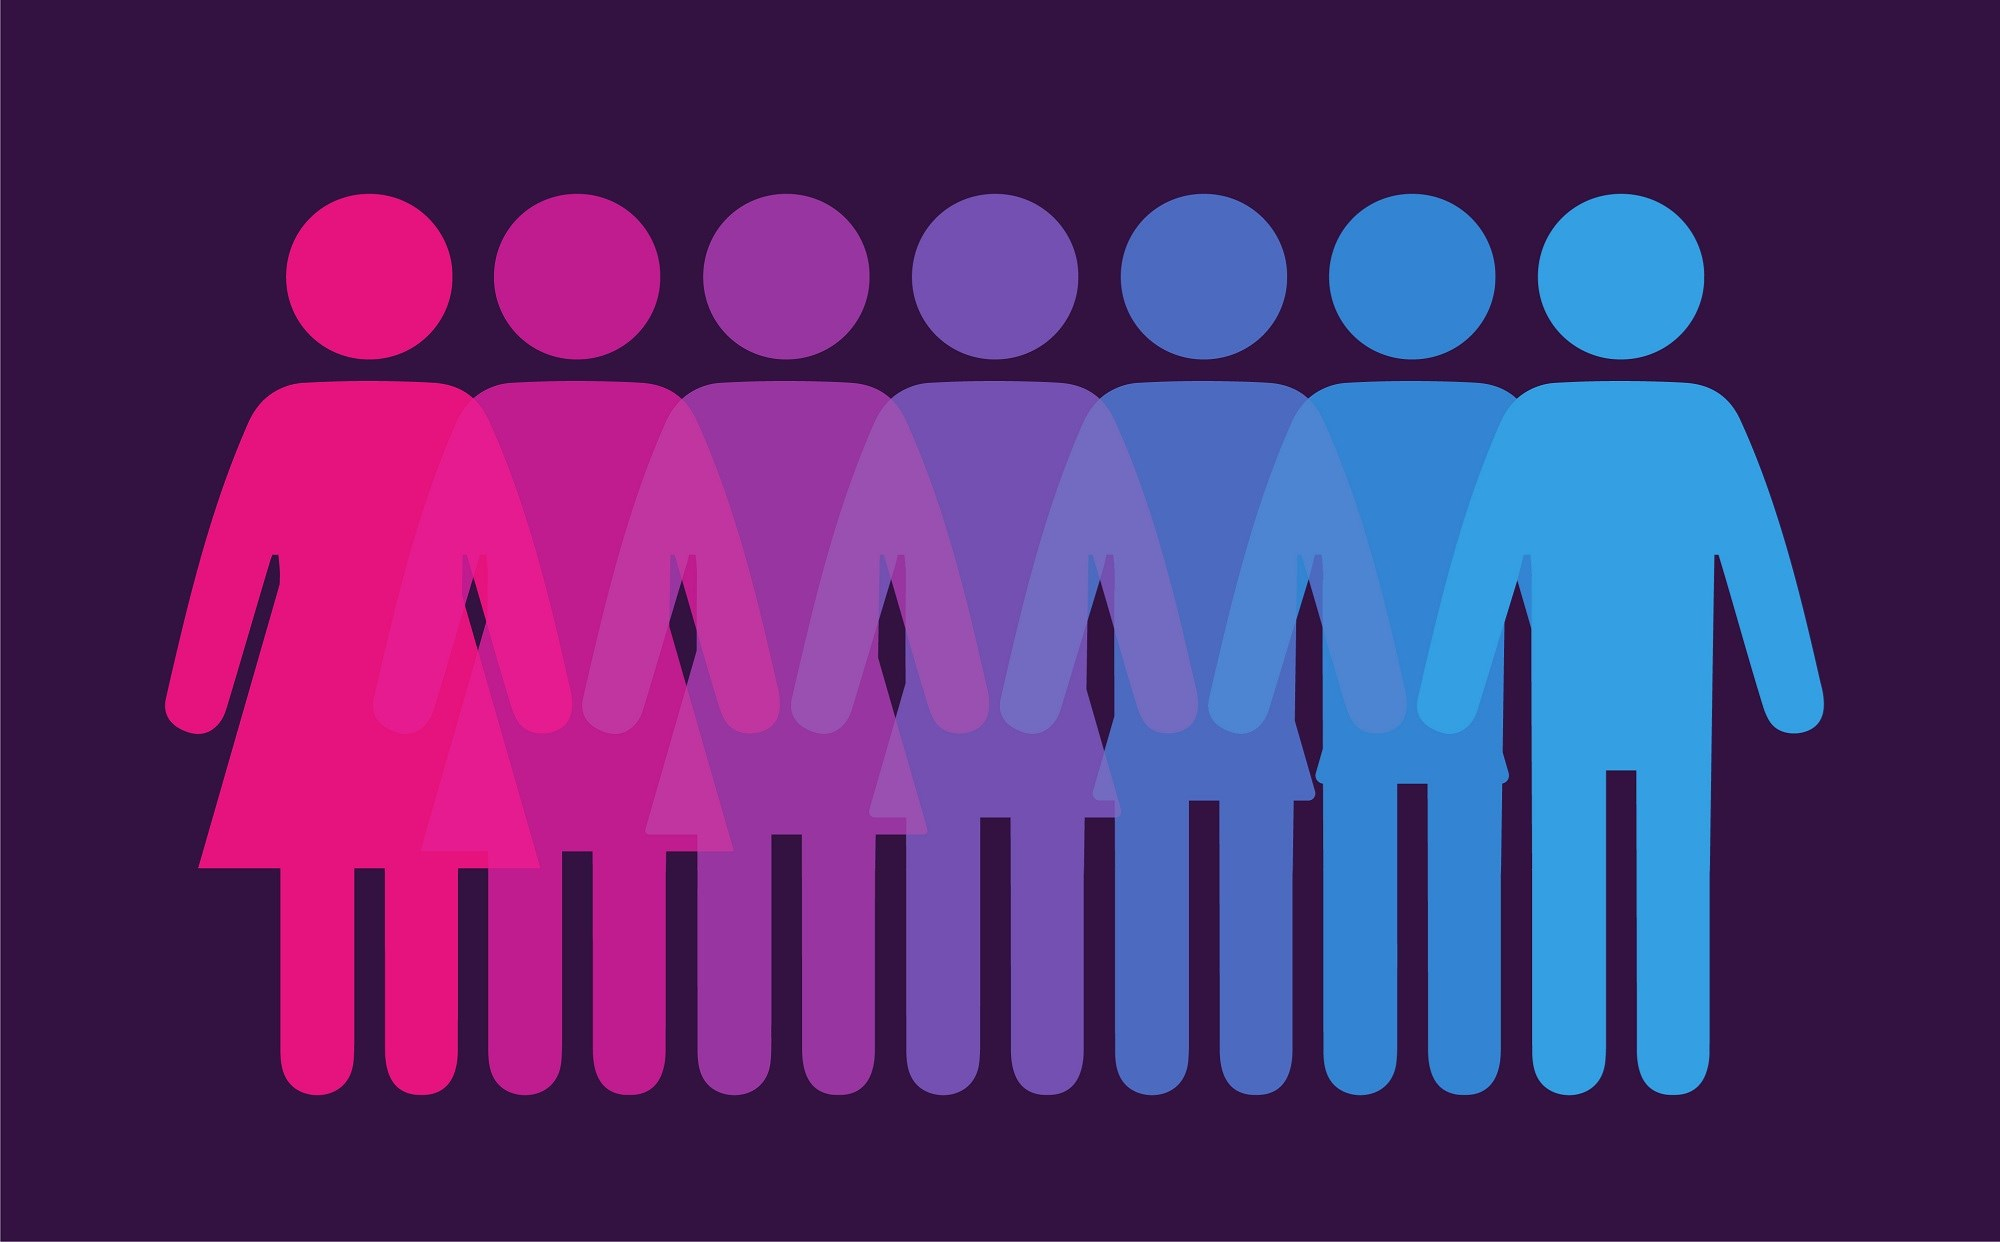 A rapid increase in the female-to-male ratio of MS incidence has been observed through several population studies.